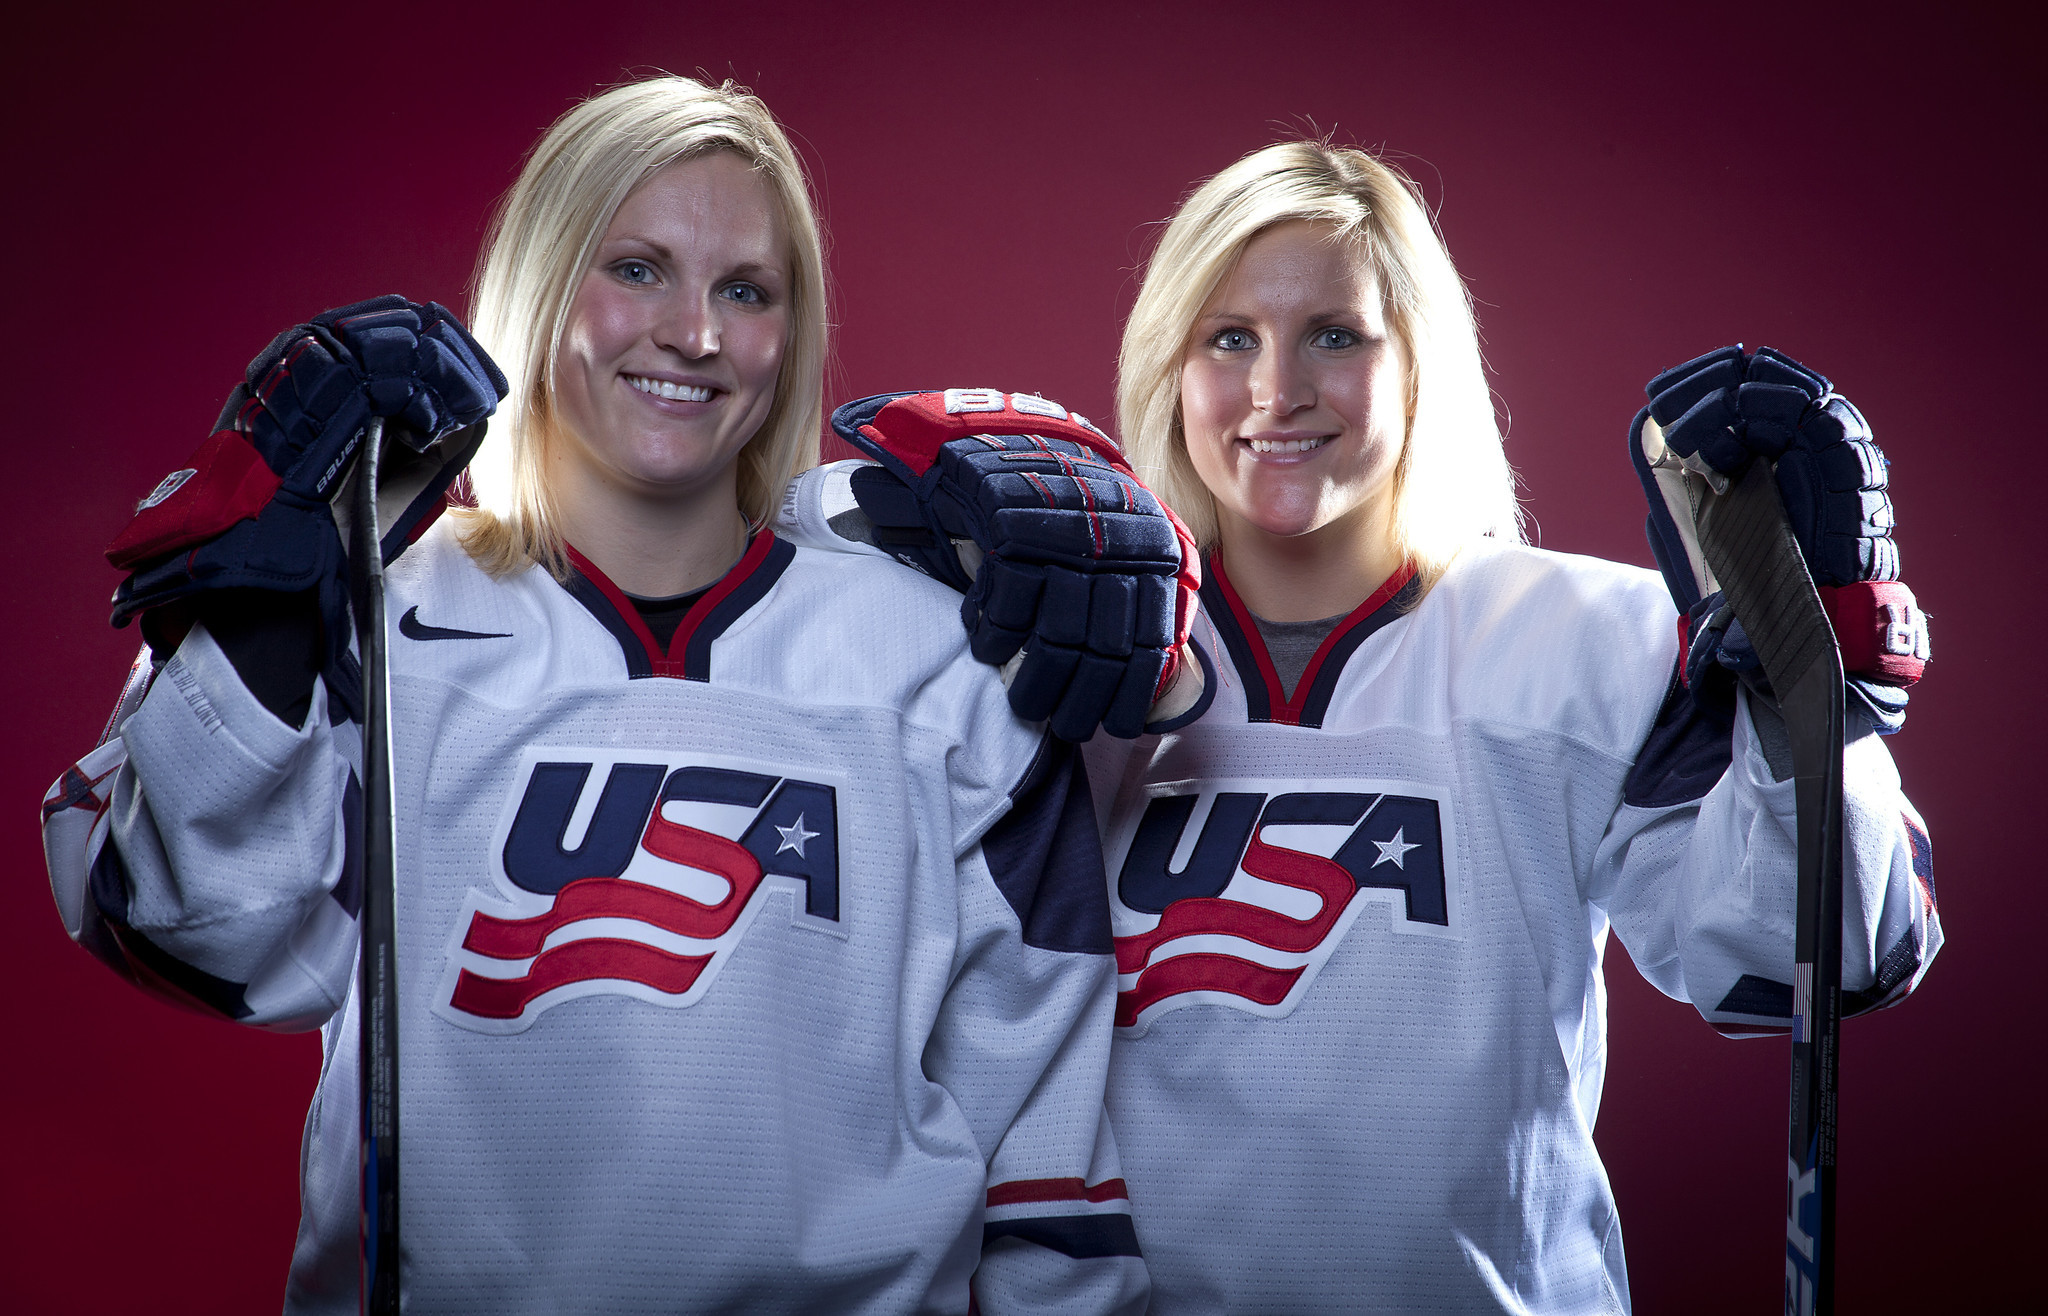 Monique Lamoureux, Jocelyn Lamoureux feared being cut from US womens hockey team pics